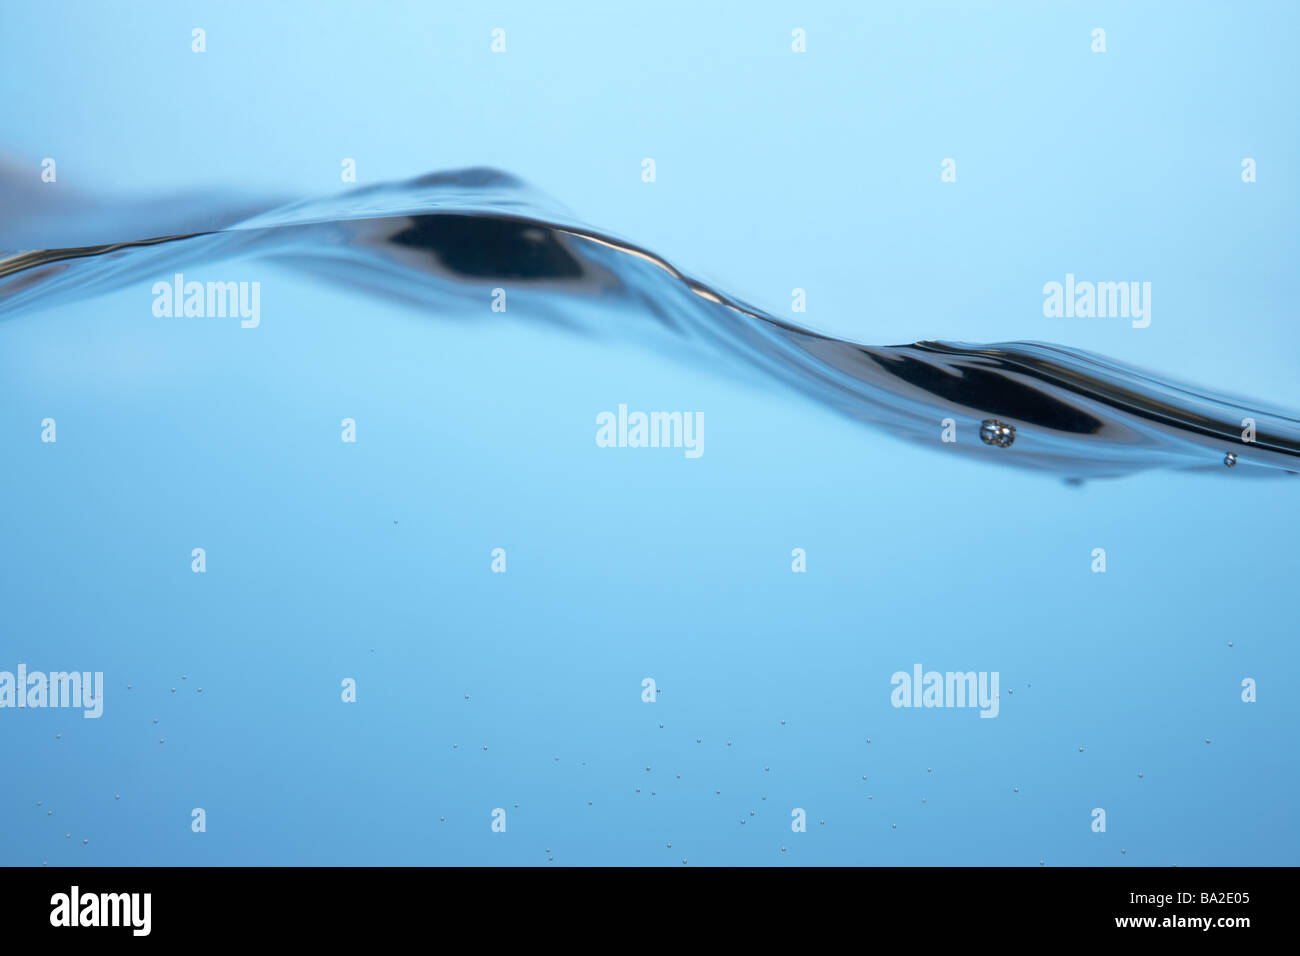 Water Rippling Against Glass - Stock Image